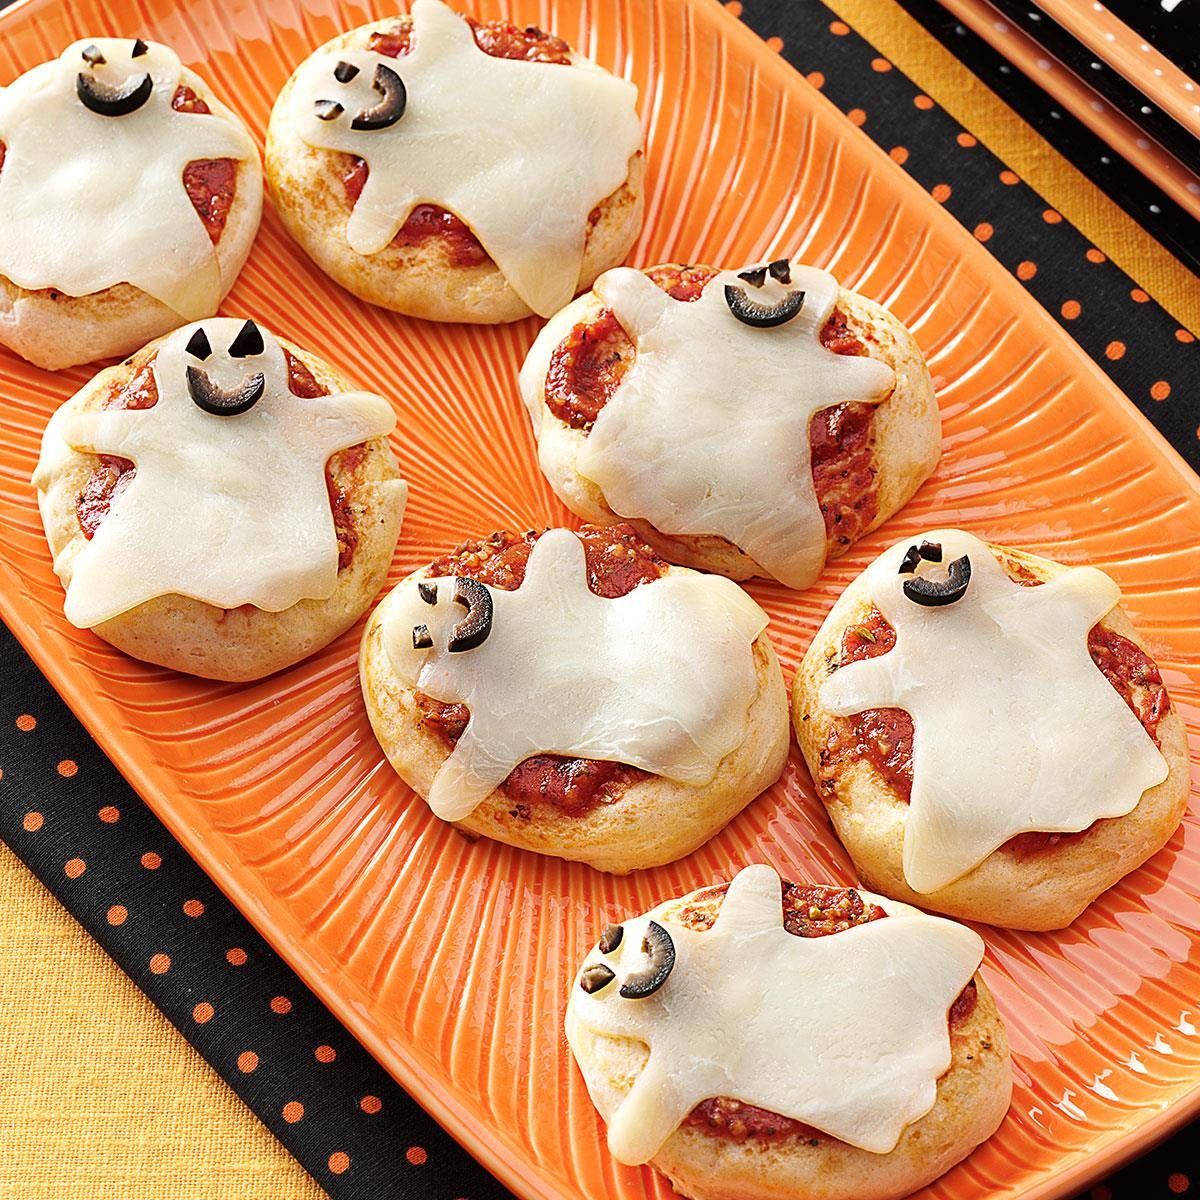 Halloween Dinner Recipes With Pictures.Halloween Dinner Recipes Taste Of Home